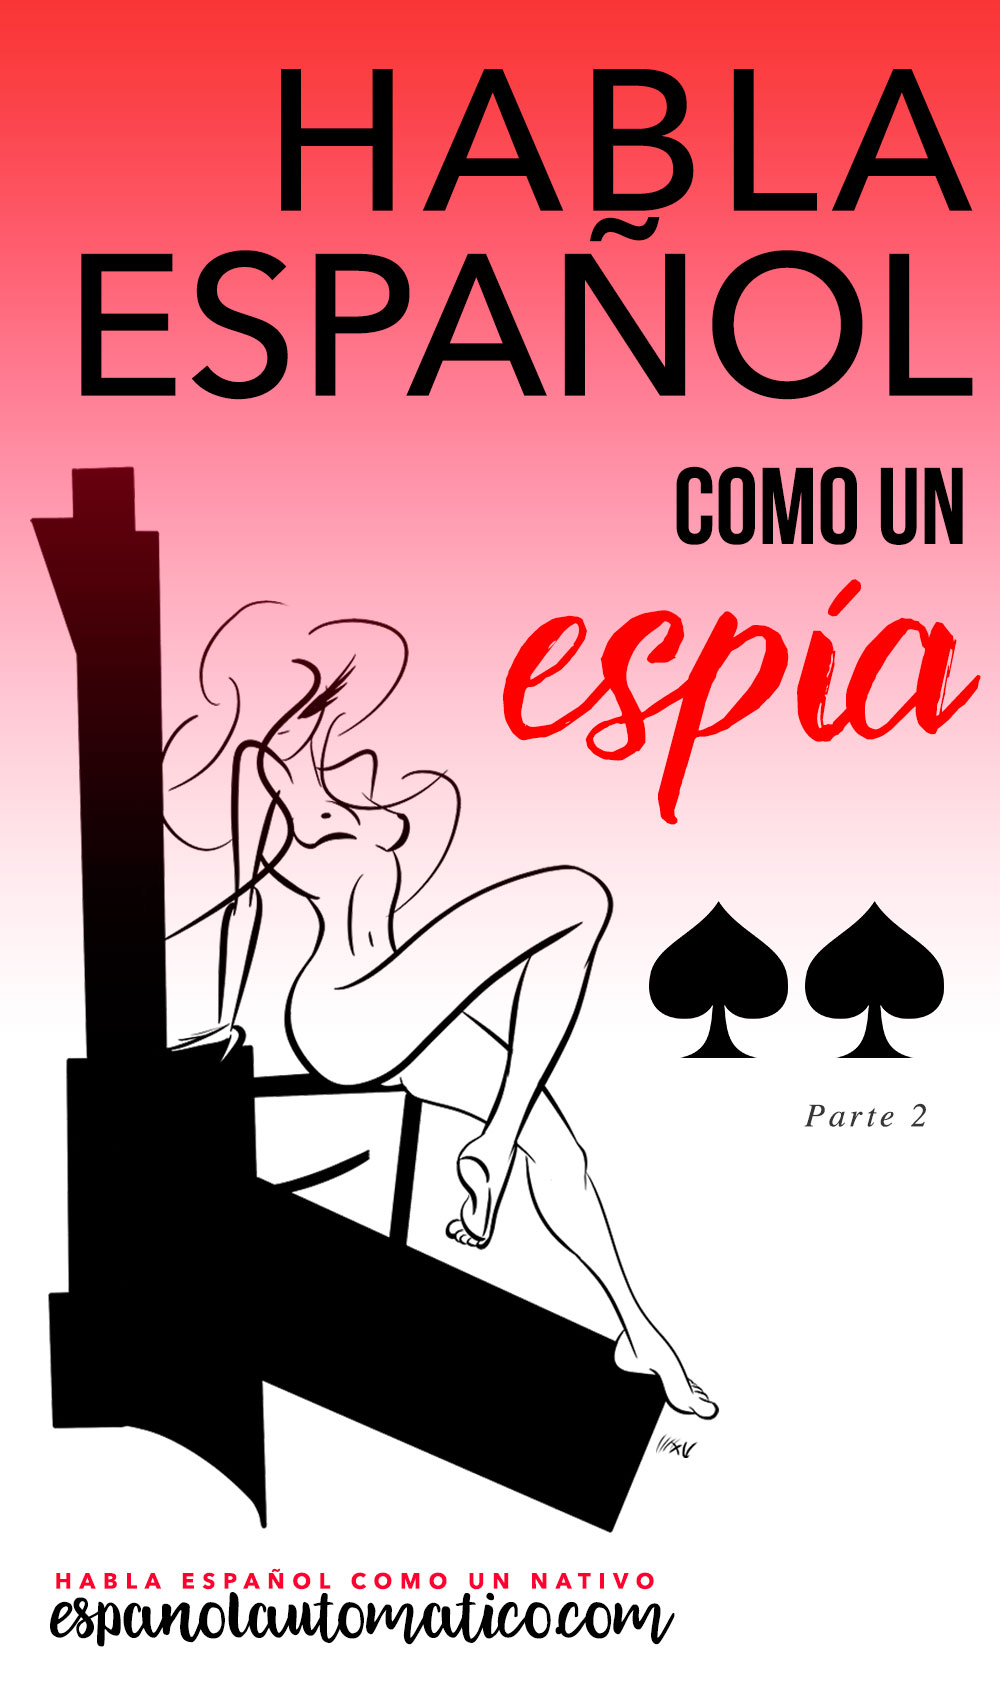 In todays episode of the podcast we will learn to speak Spanish like a spy: dangerously entertaining way to learn new Spanish vocabulary. Today we talk about Ian Fleming's most famous character: James Bond, the secret agent 007. But obviously this is just an excuse to dive into Spanish expressions, Spanish idioms and new Spanish vocabulary that you can use in your Spanish conversation with friends. And there is also a fun survey for you to participate! Repin this for later!